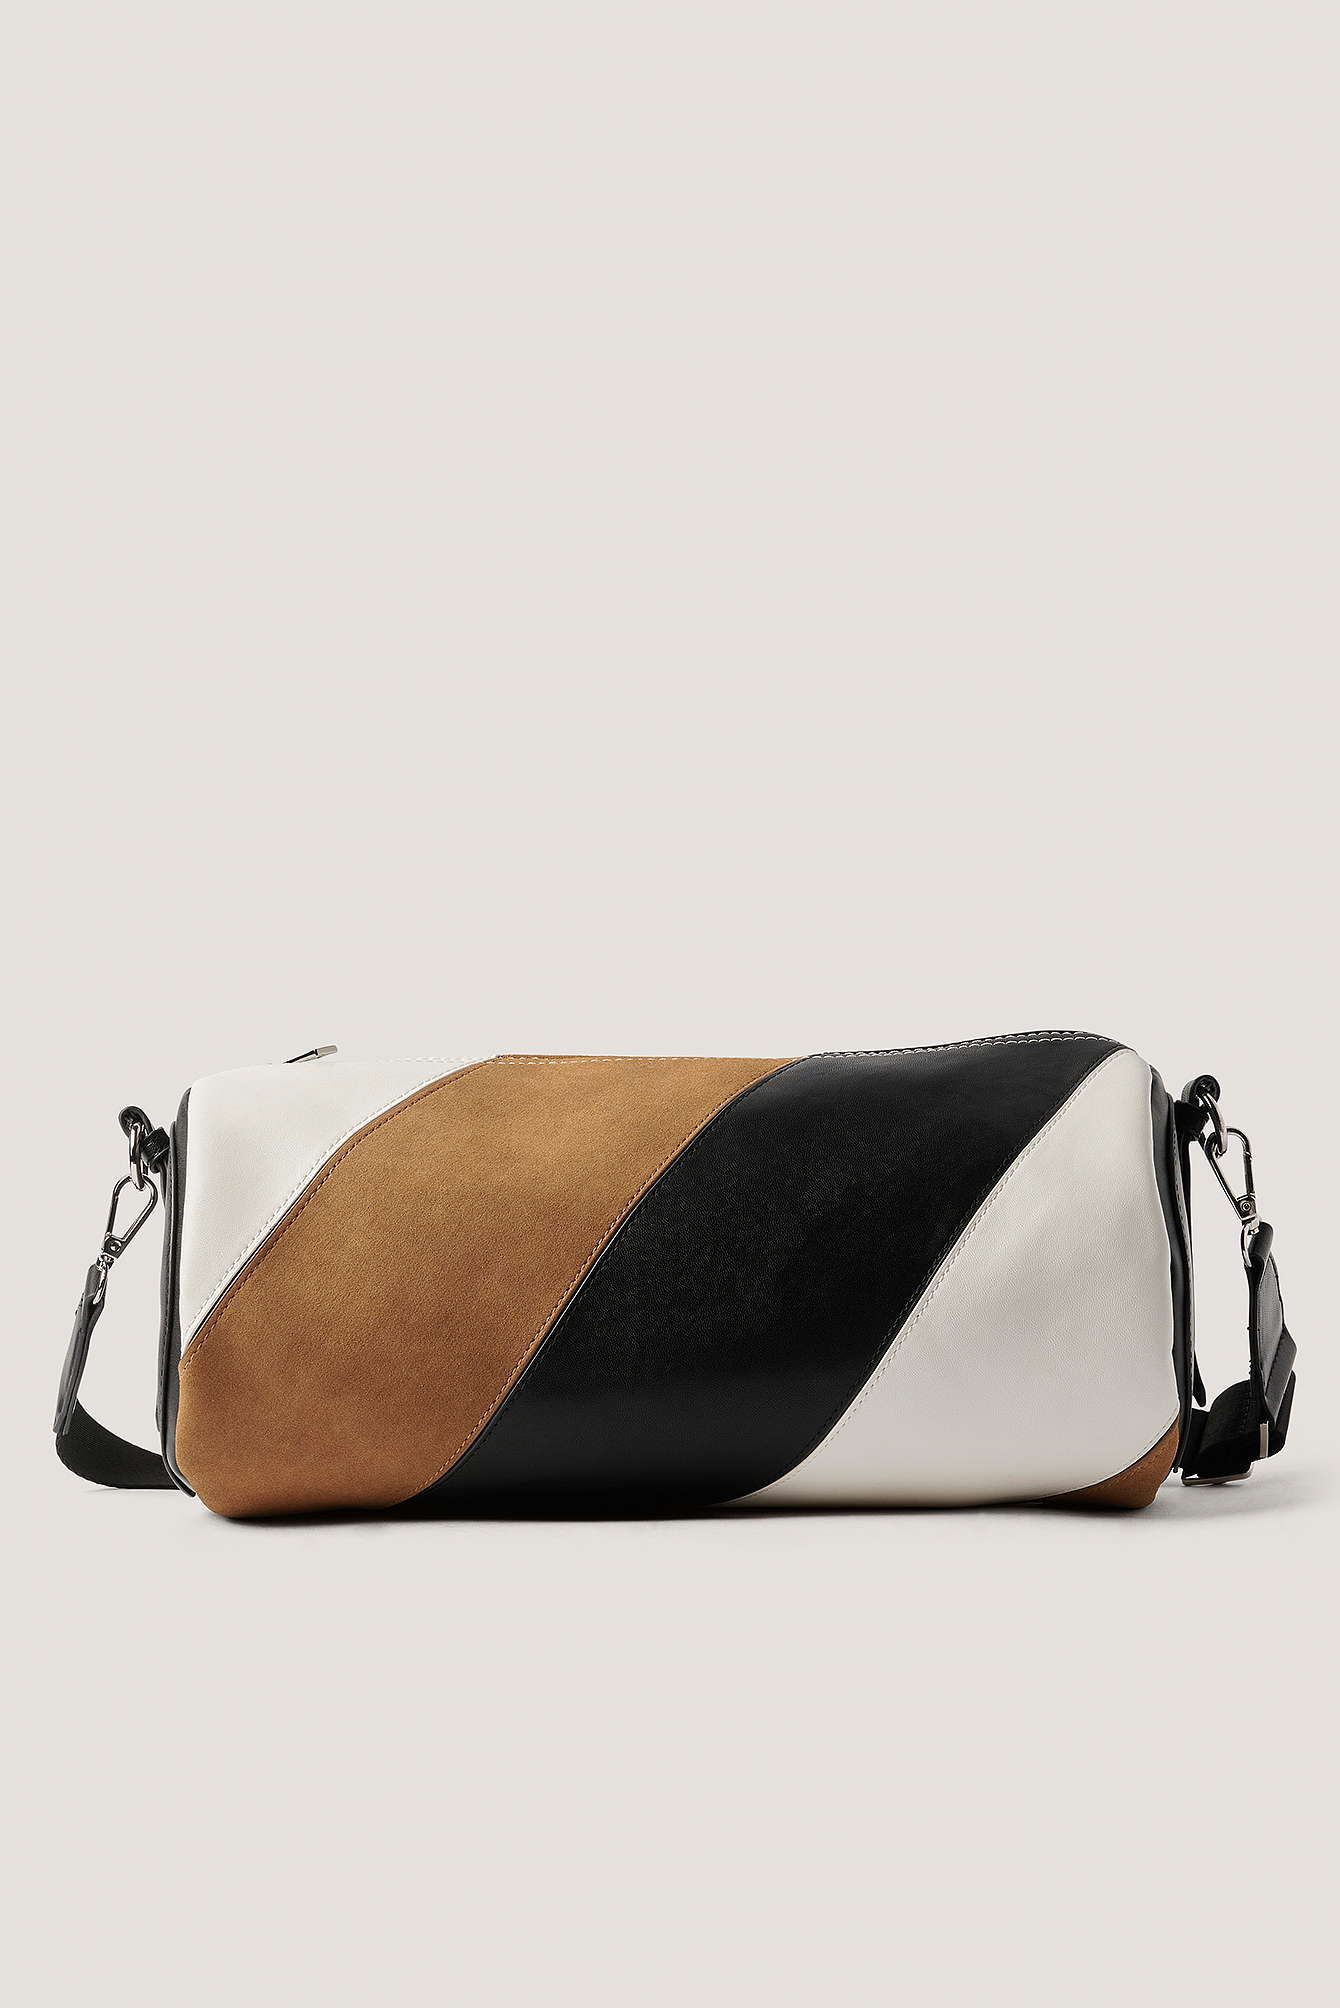 Black/Brown Sac Baril Multicolore